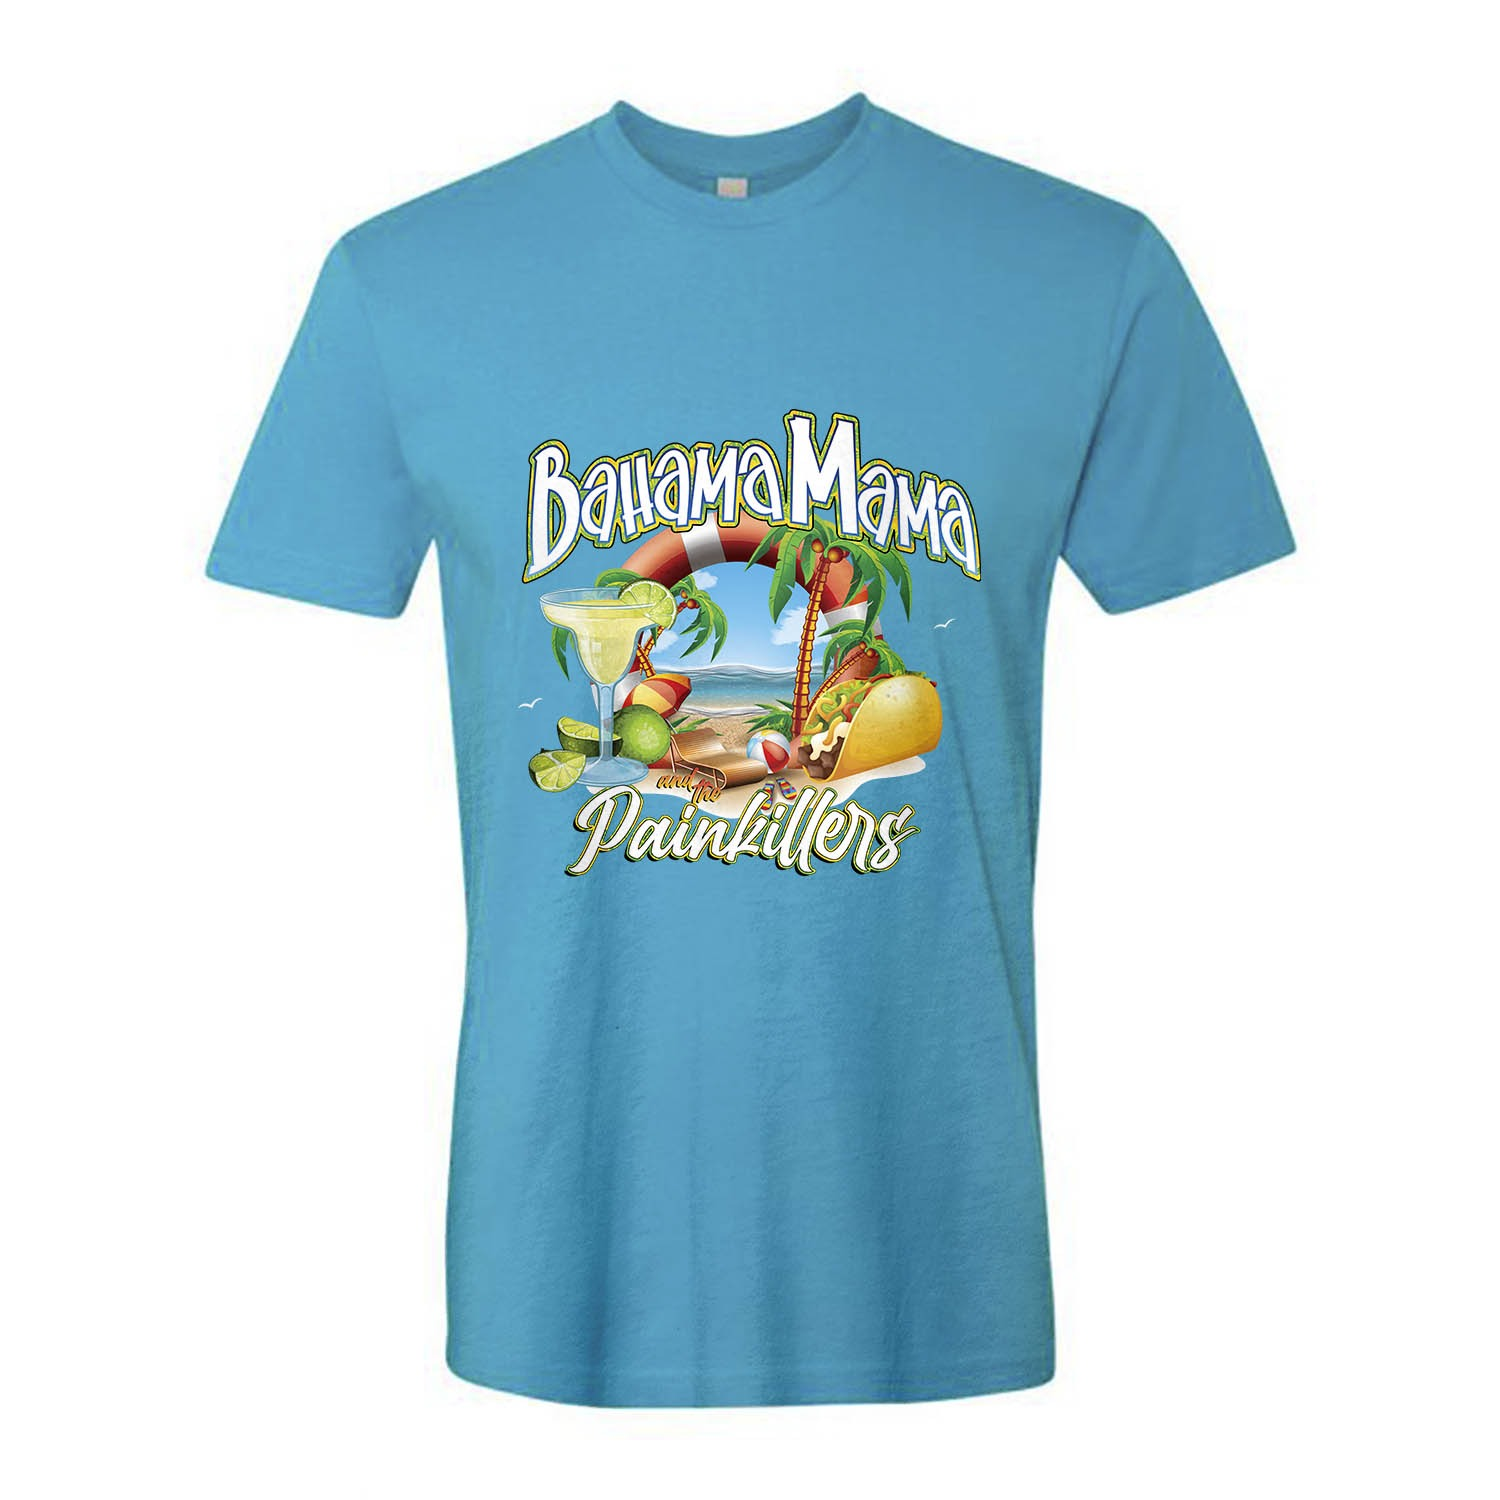 Bahama Mama and the Painkillers Double T Unisex Tee, The Troprock Shop